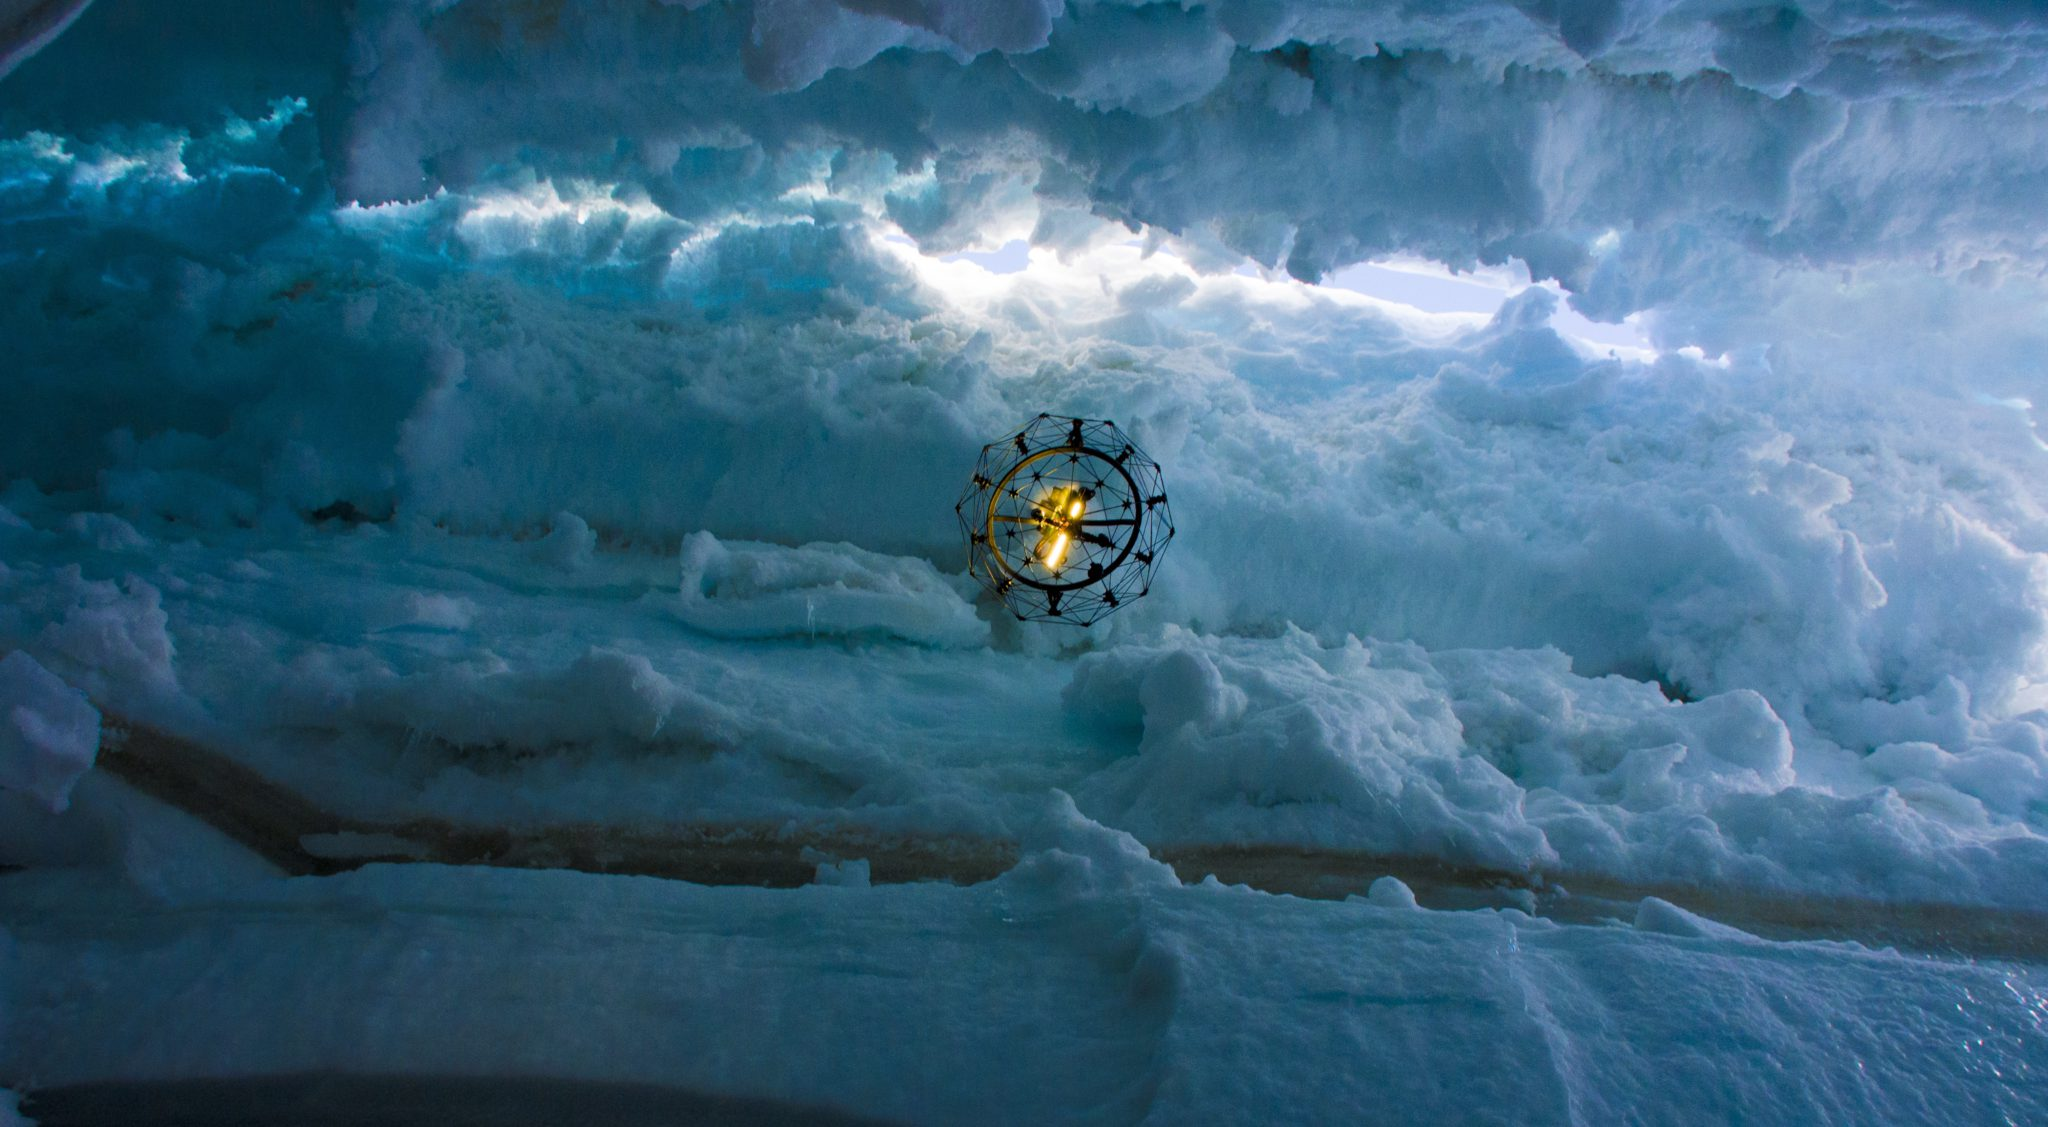 Flyability redefines UAV operation boundaries and explores the heart of a glacier